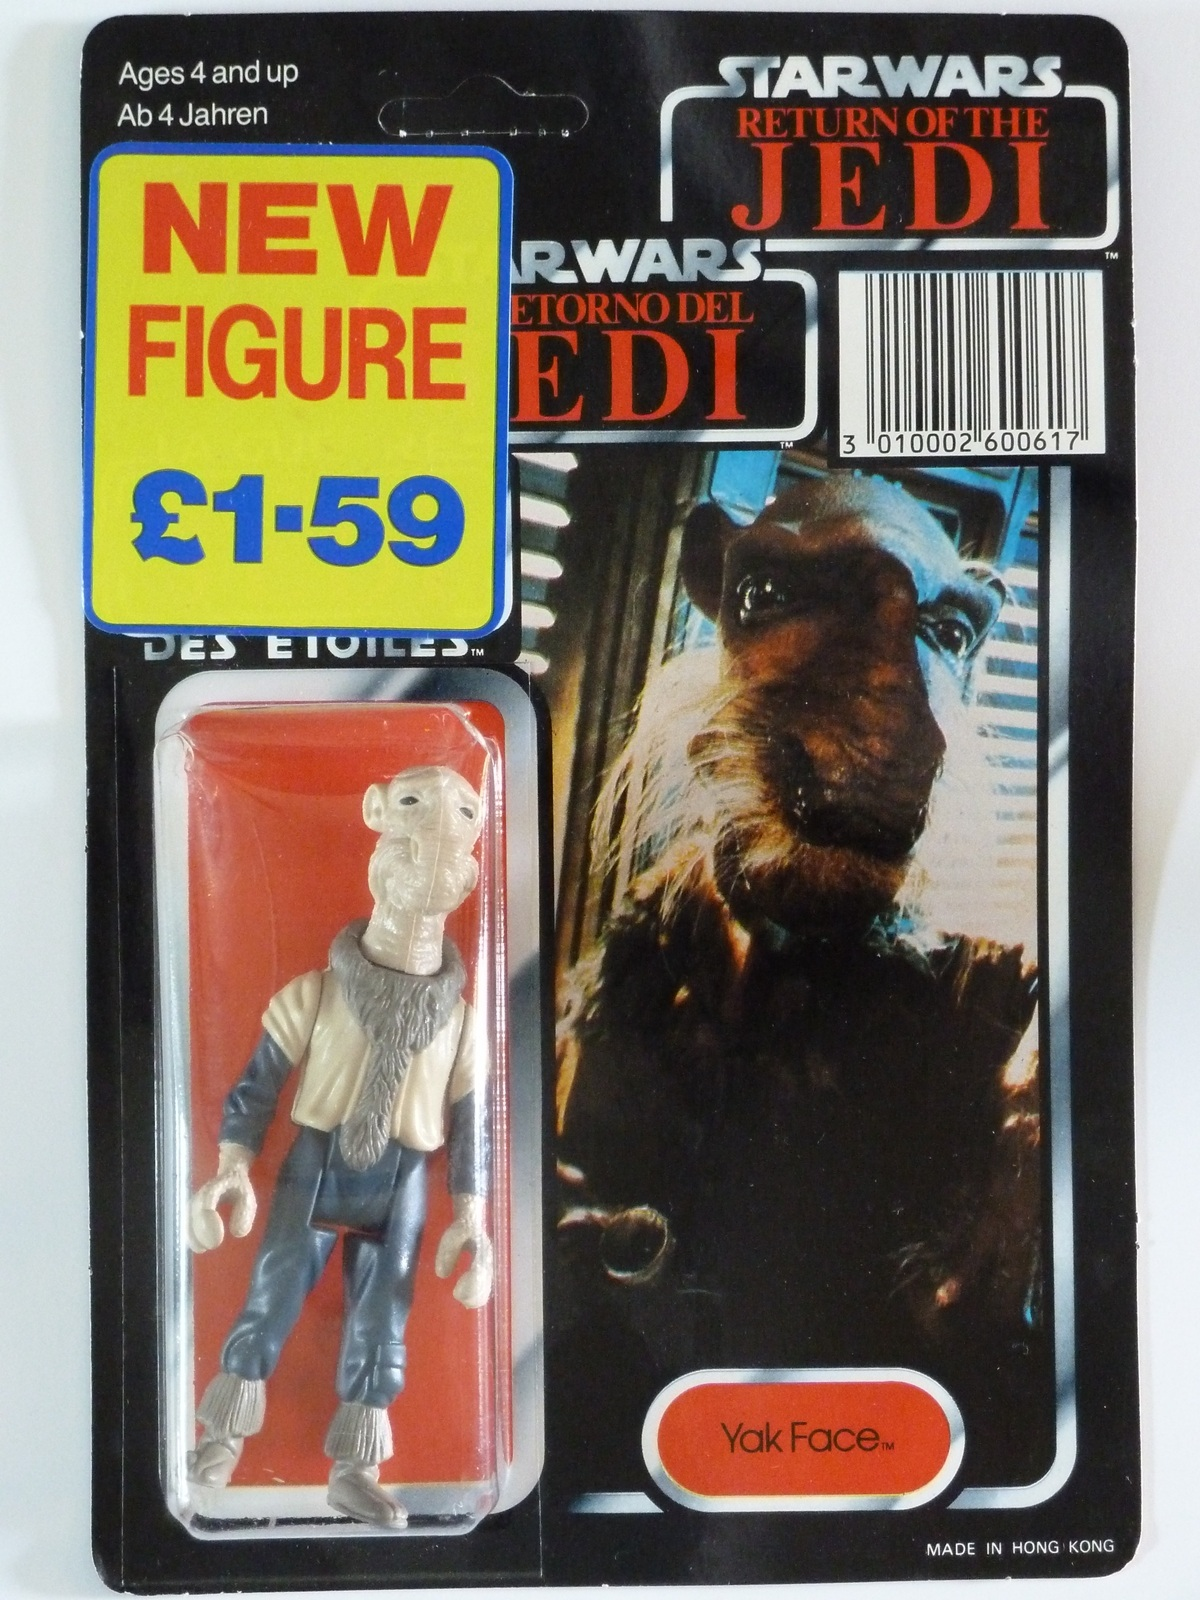 8 3 10 Star Wars Toys That Will Earn You A Fortune!